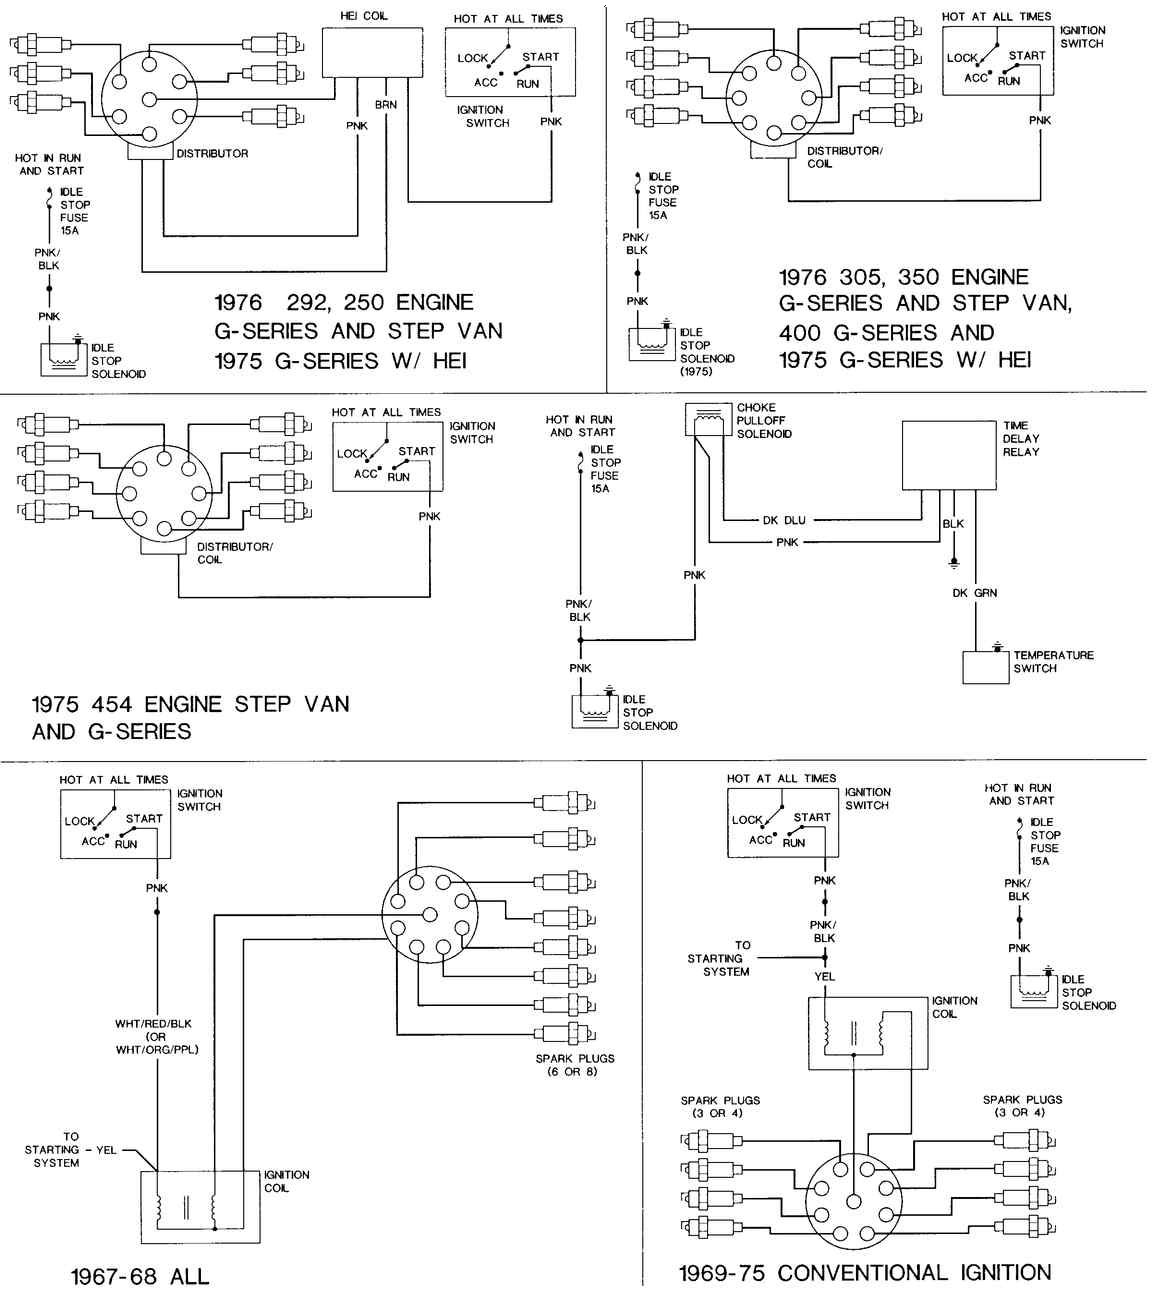 1018d1252846358 67 g10 wiring diagrams parts 89776w01l workhorse wiring diagram efcaviation com workhorse motorhome chassis wiring diagram at n-0.co